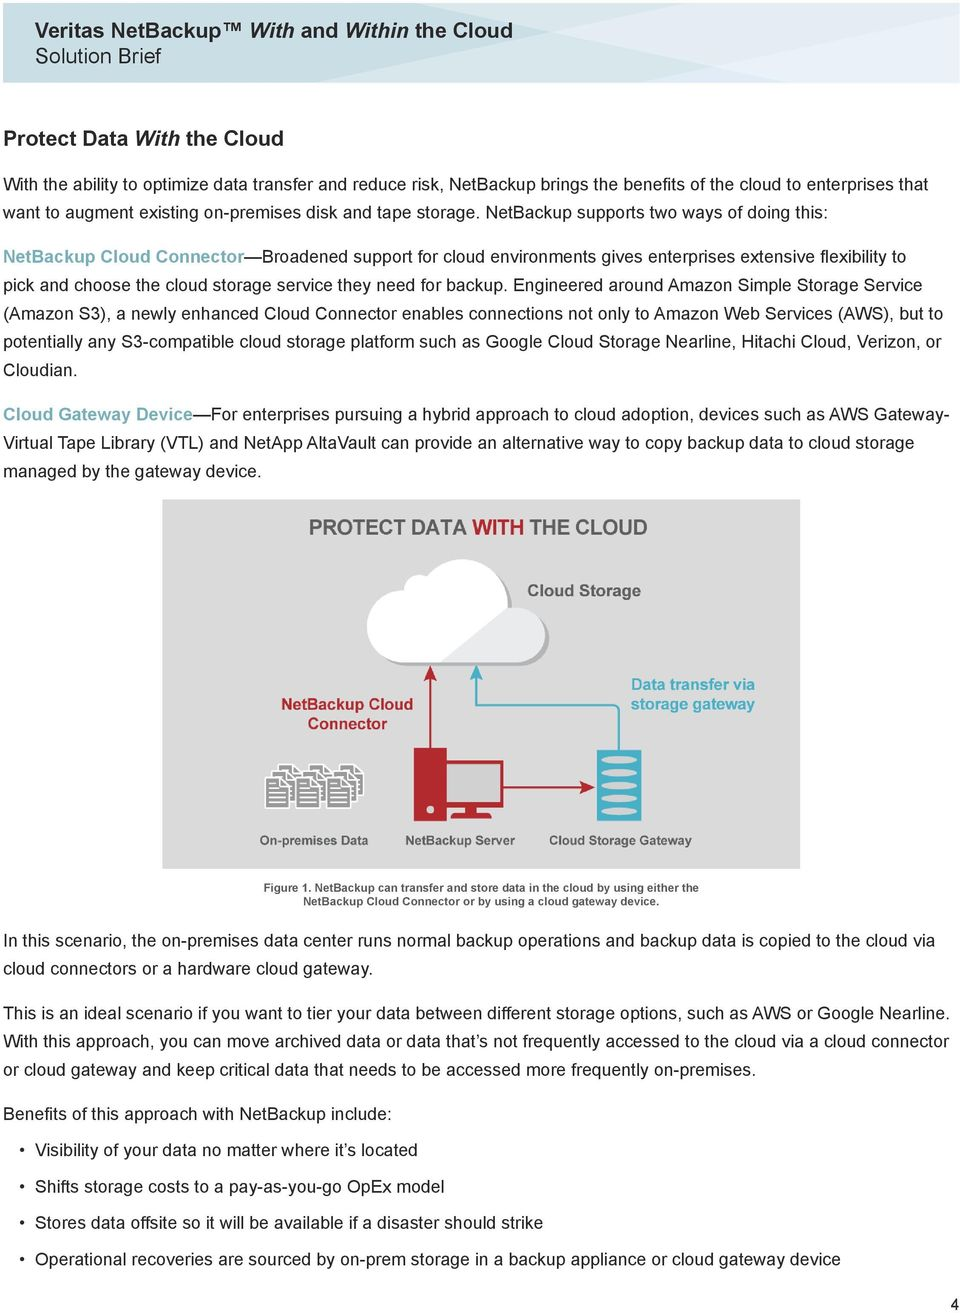 NetBackup supports two ways of doing this: NetBackup Cloud Connector Broadened support for cloud environments gives enterprises extensive flexibility to pick and choose the cloud storage service they